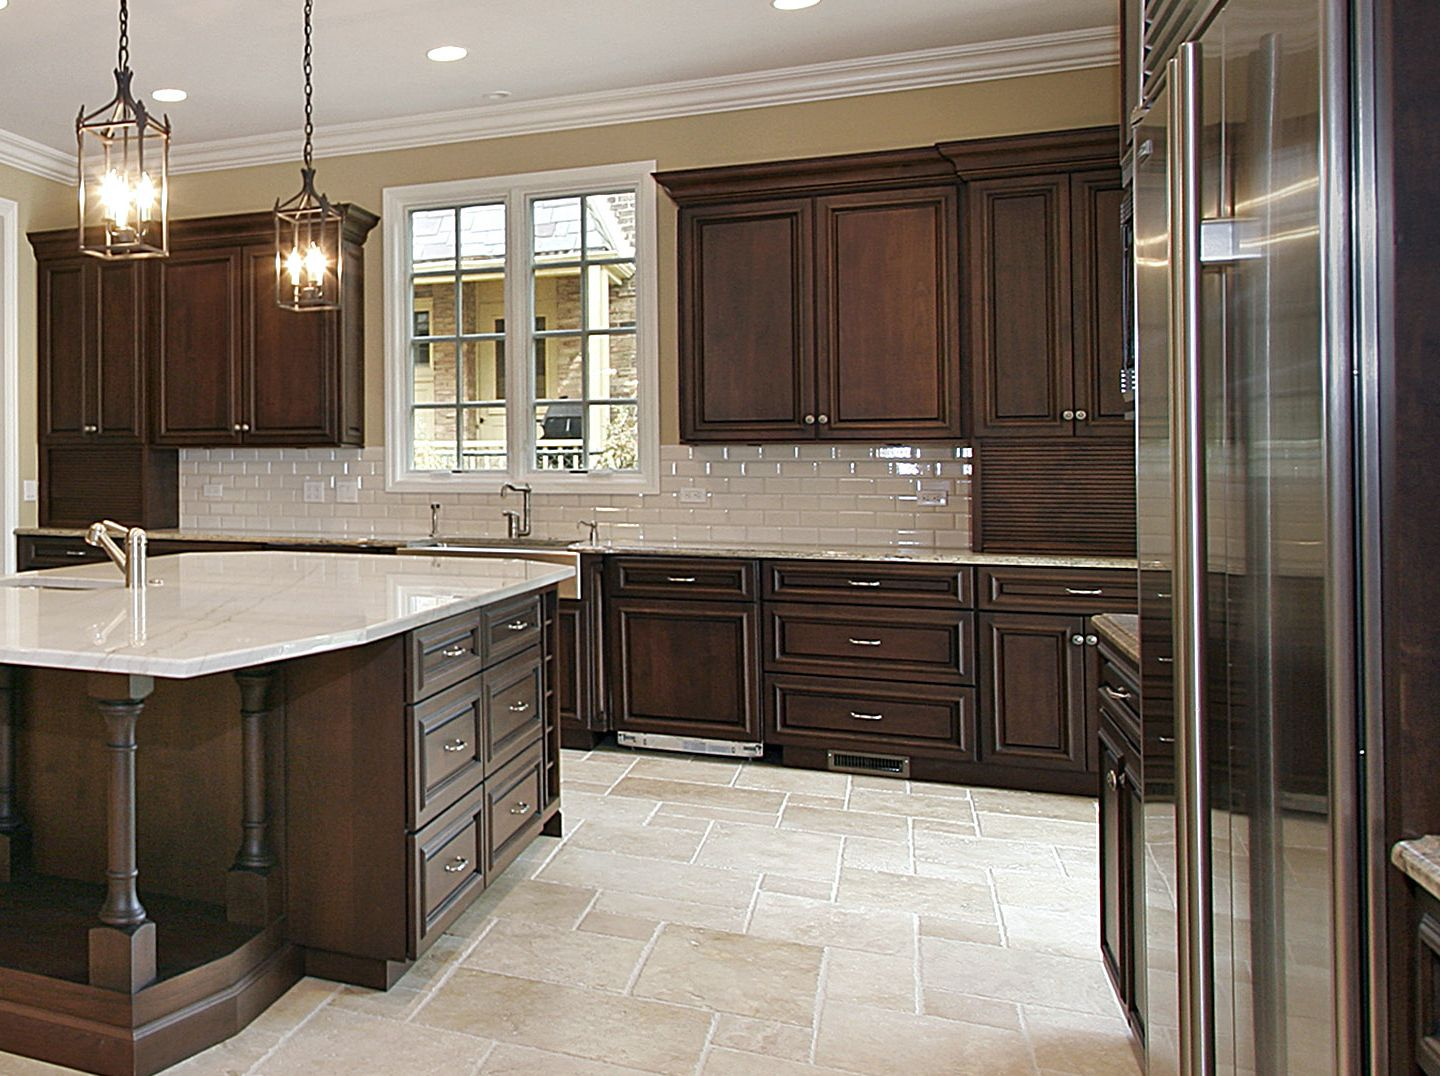 Classic dark cherry kitchen with large island www for Dark kitchen cabinets light island